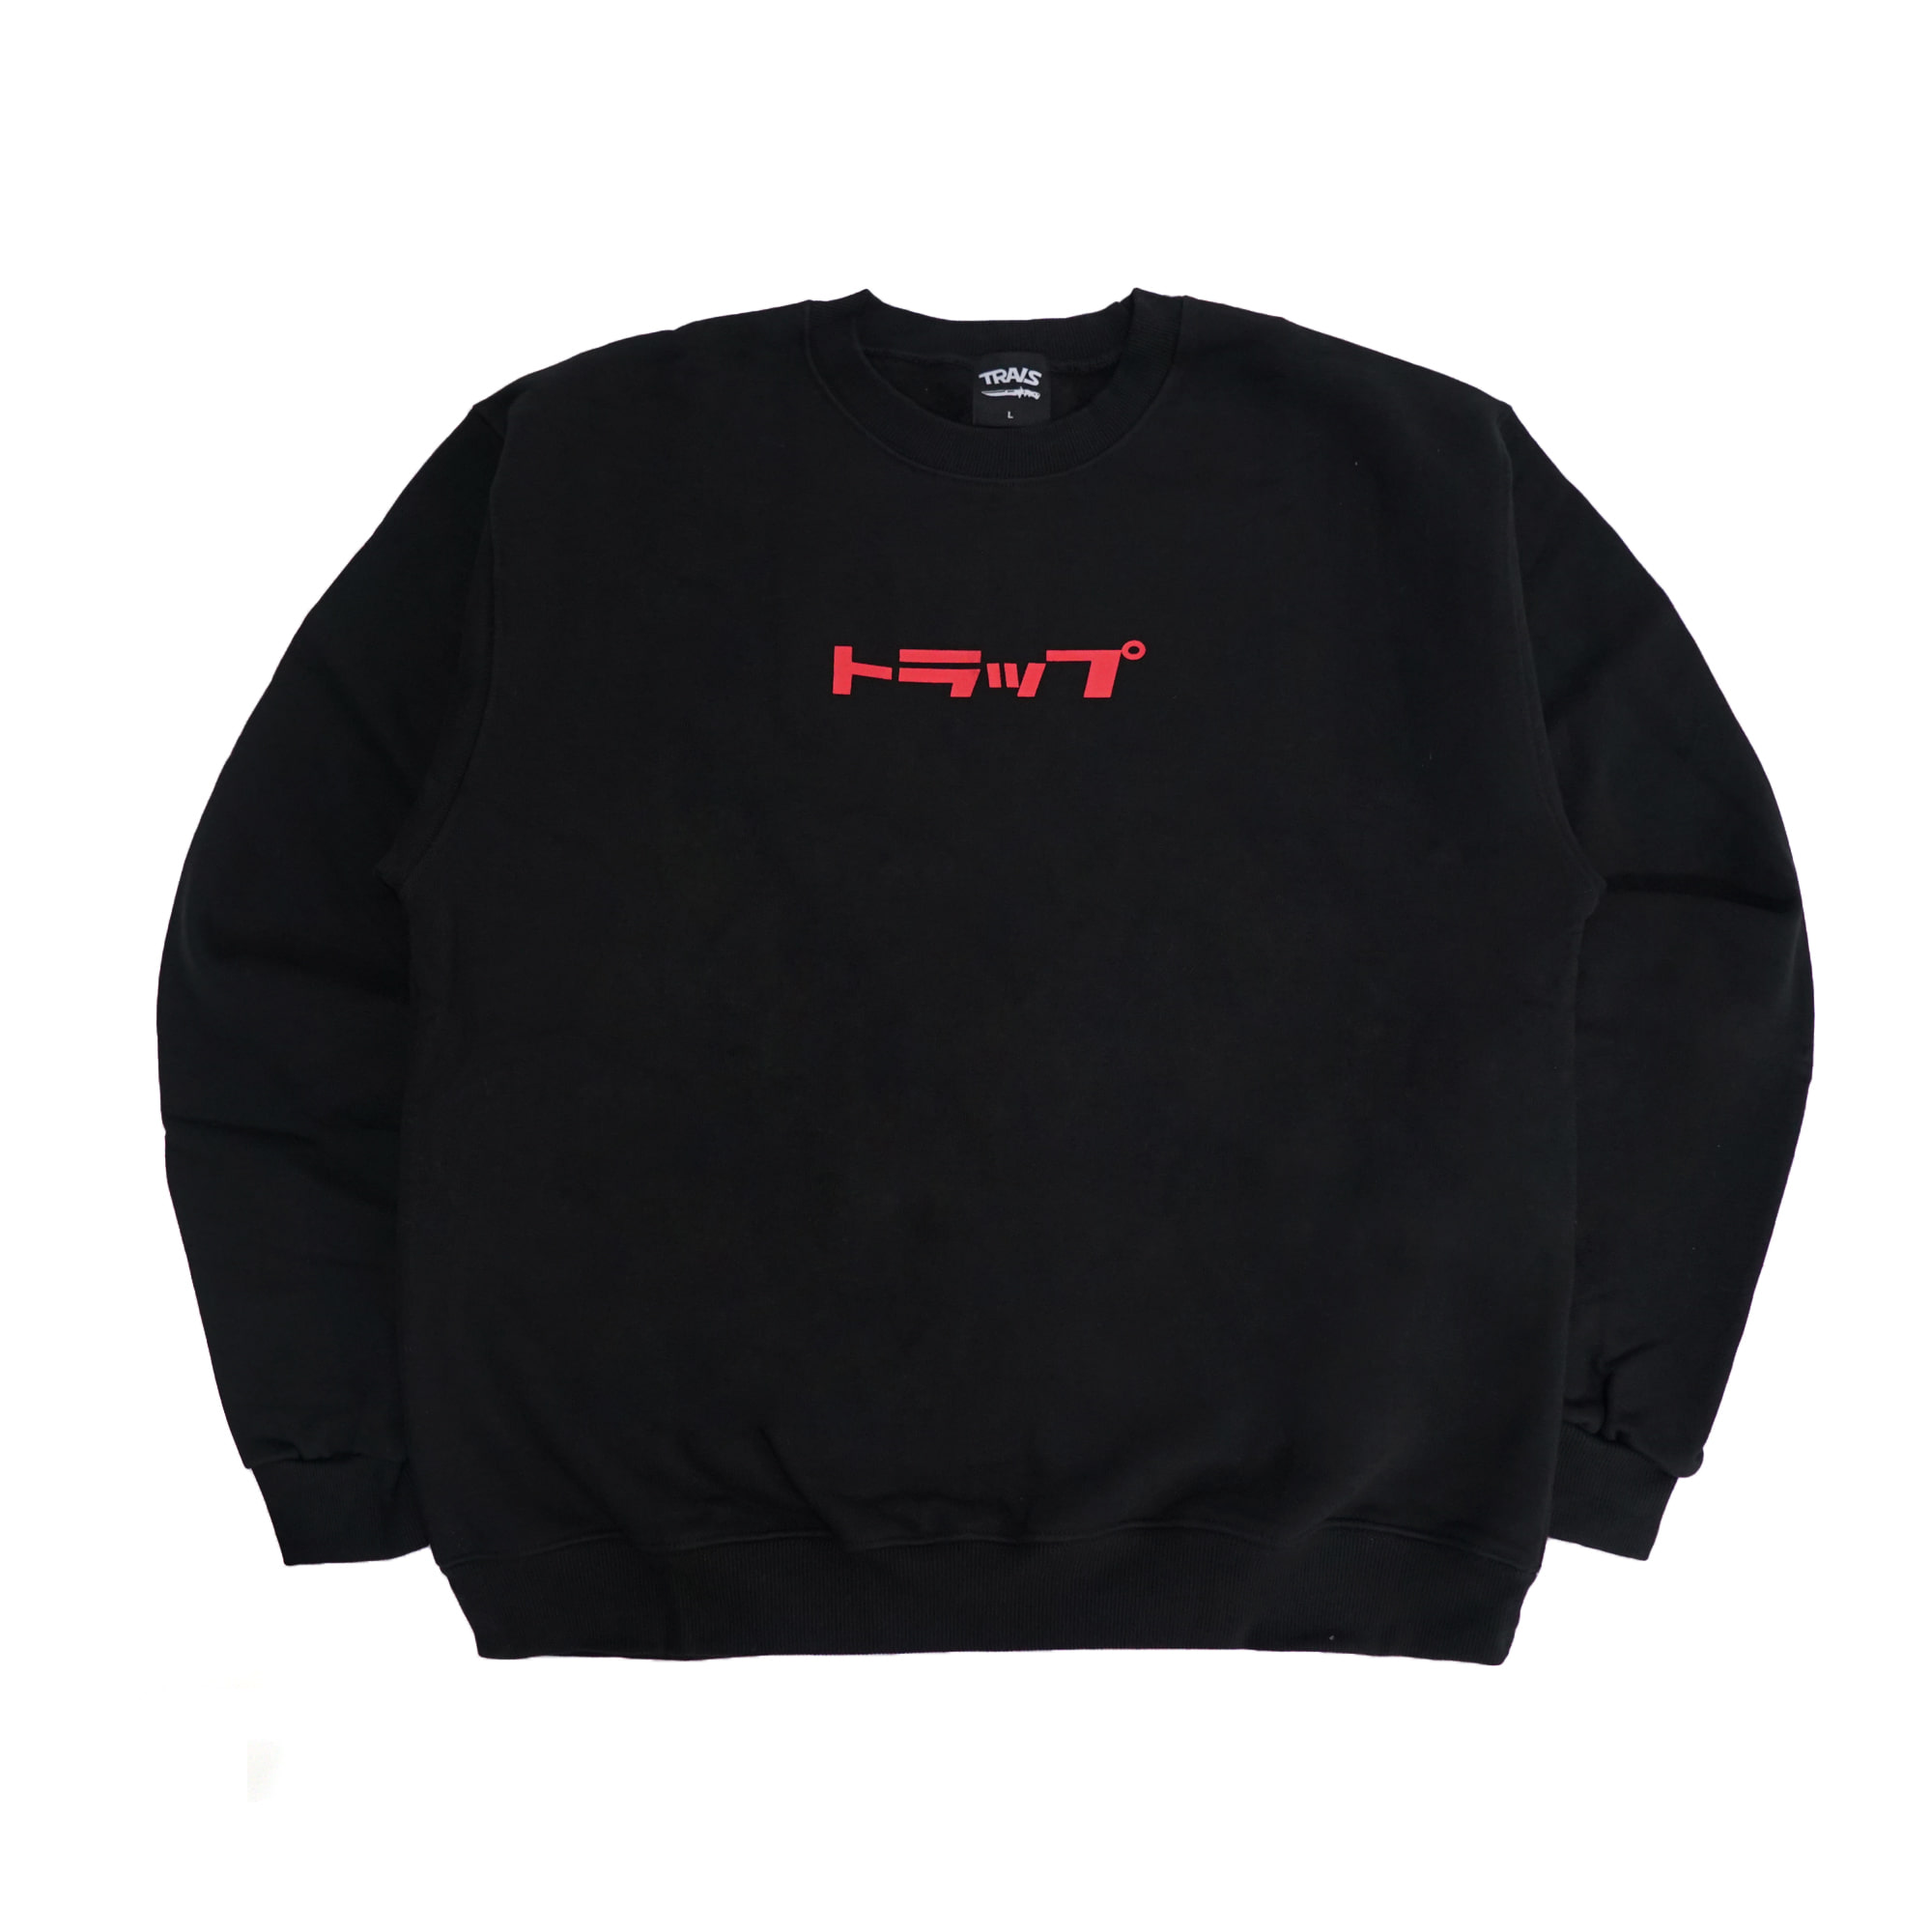 [TRAVS] TRAP CREWNECK SWEATSHIRTS - BLACK / NEON RED